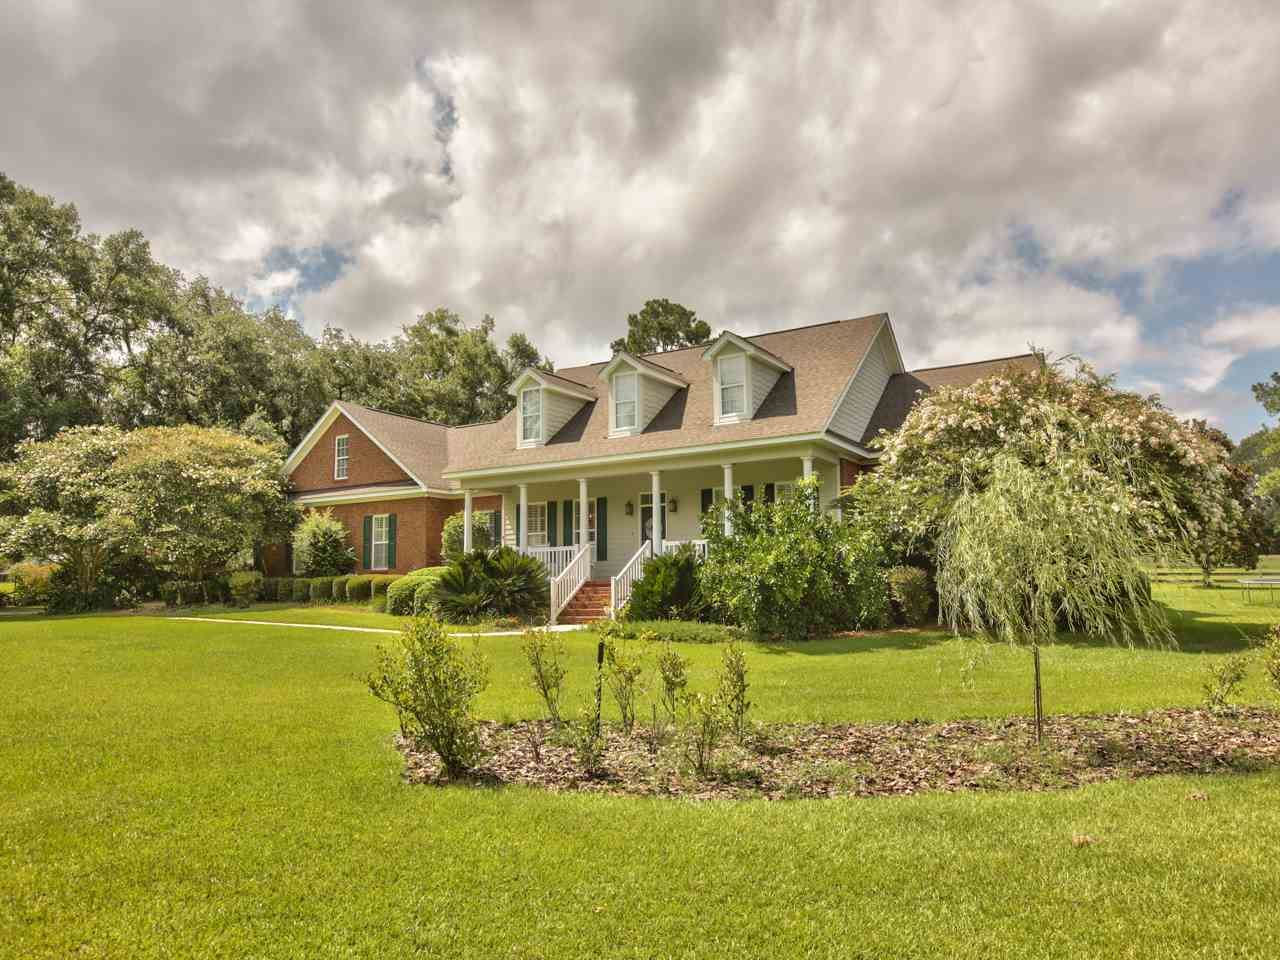 Photo of 5150 QUAIL VALLEY Road, TALLAHASSEE, FL 32309 (MLS # 321090)